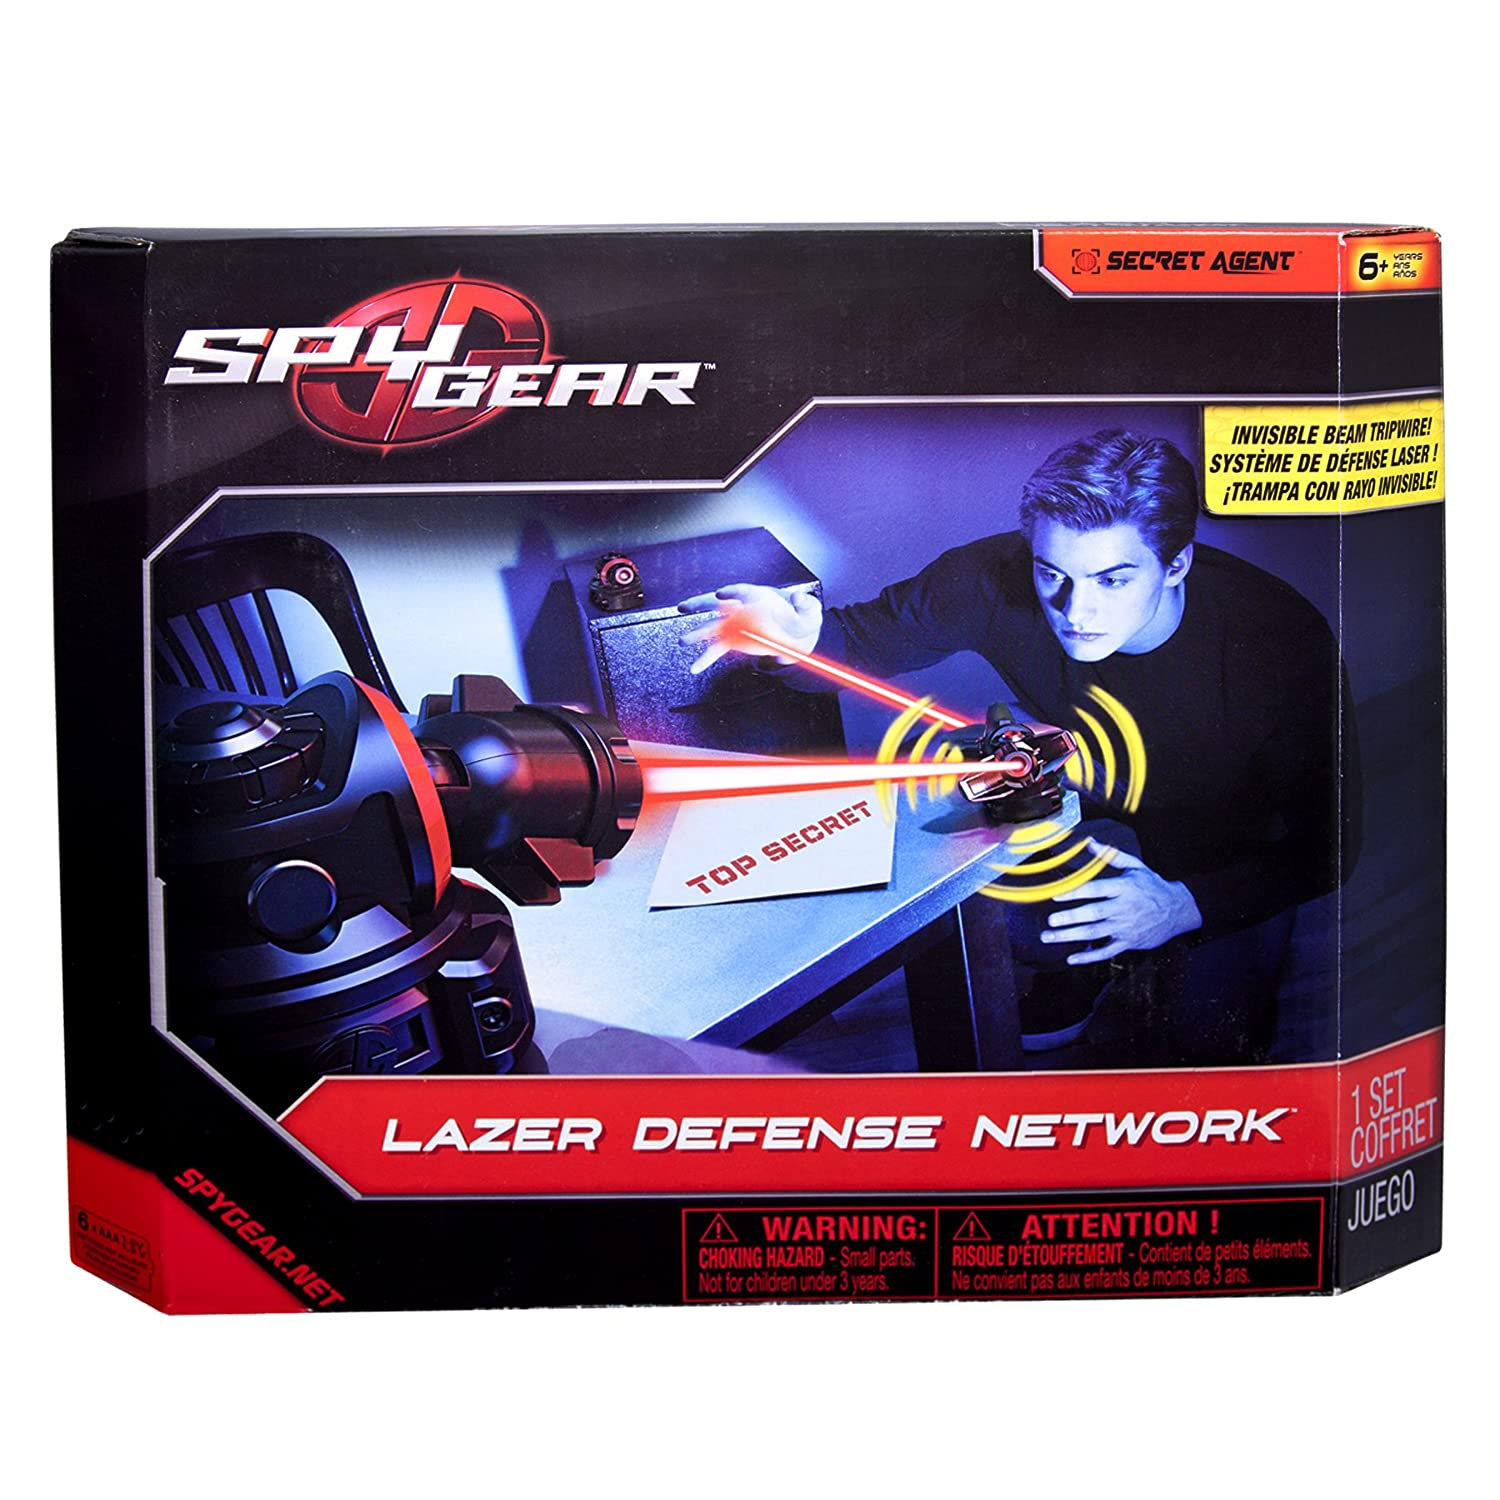 Spy Gear Lazer Defense Network Master Carton assortment Amazon